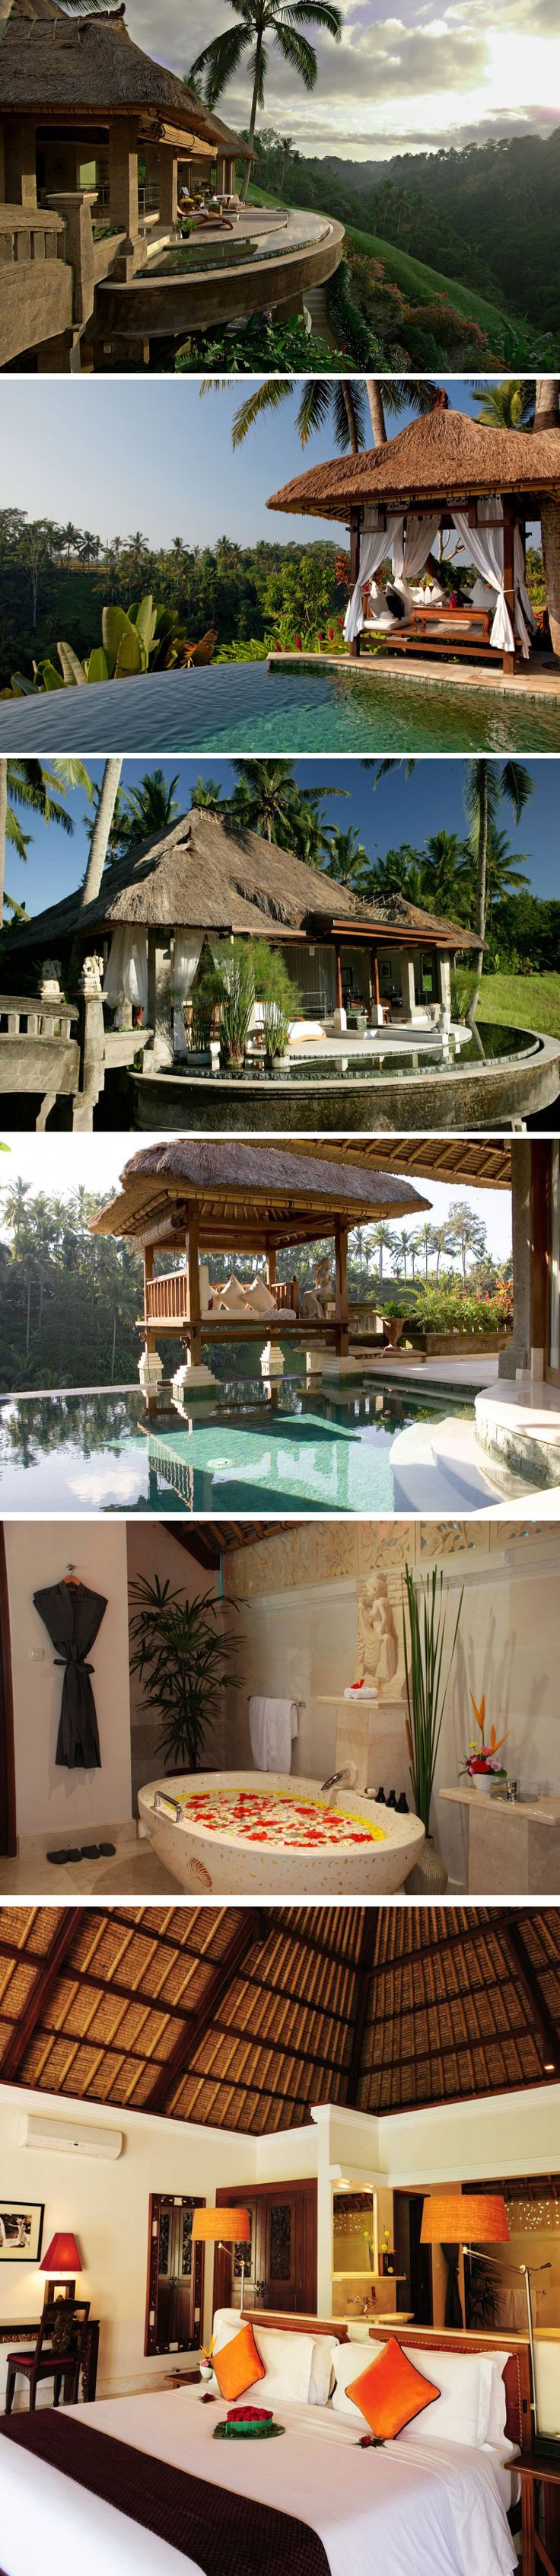 Viceroy Resort & Spa, Bali. Located on a hillside near Bali's Valley of the Kings.